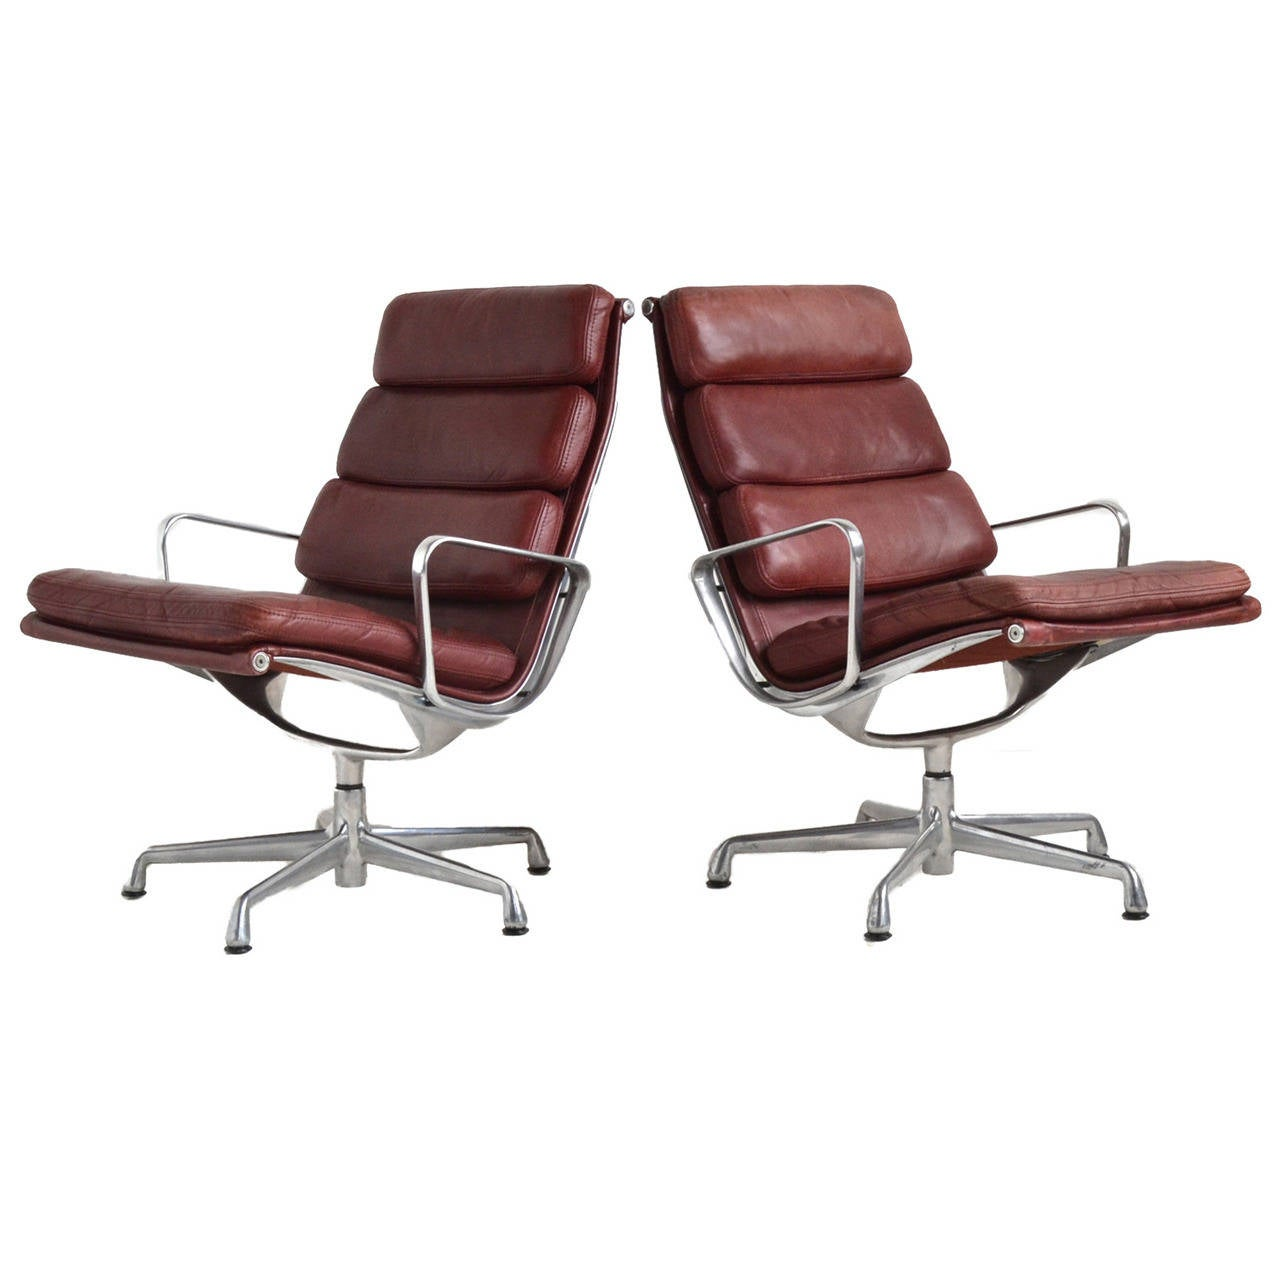 Eames Soft Pad Lounge Chairs By Herman Miller At 1stdibs